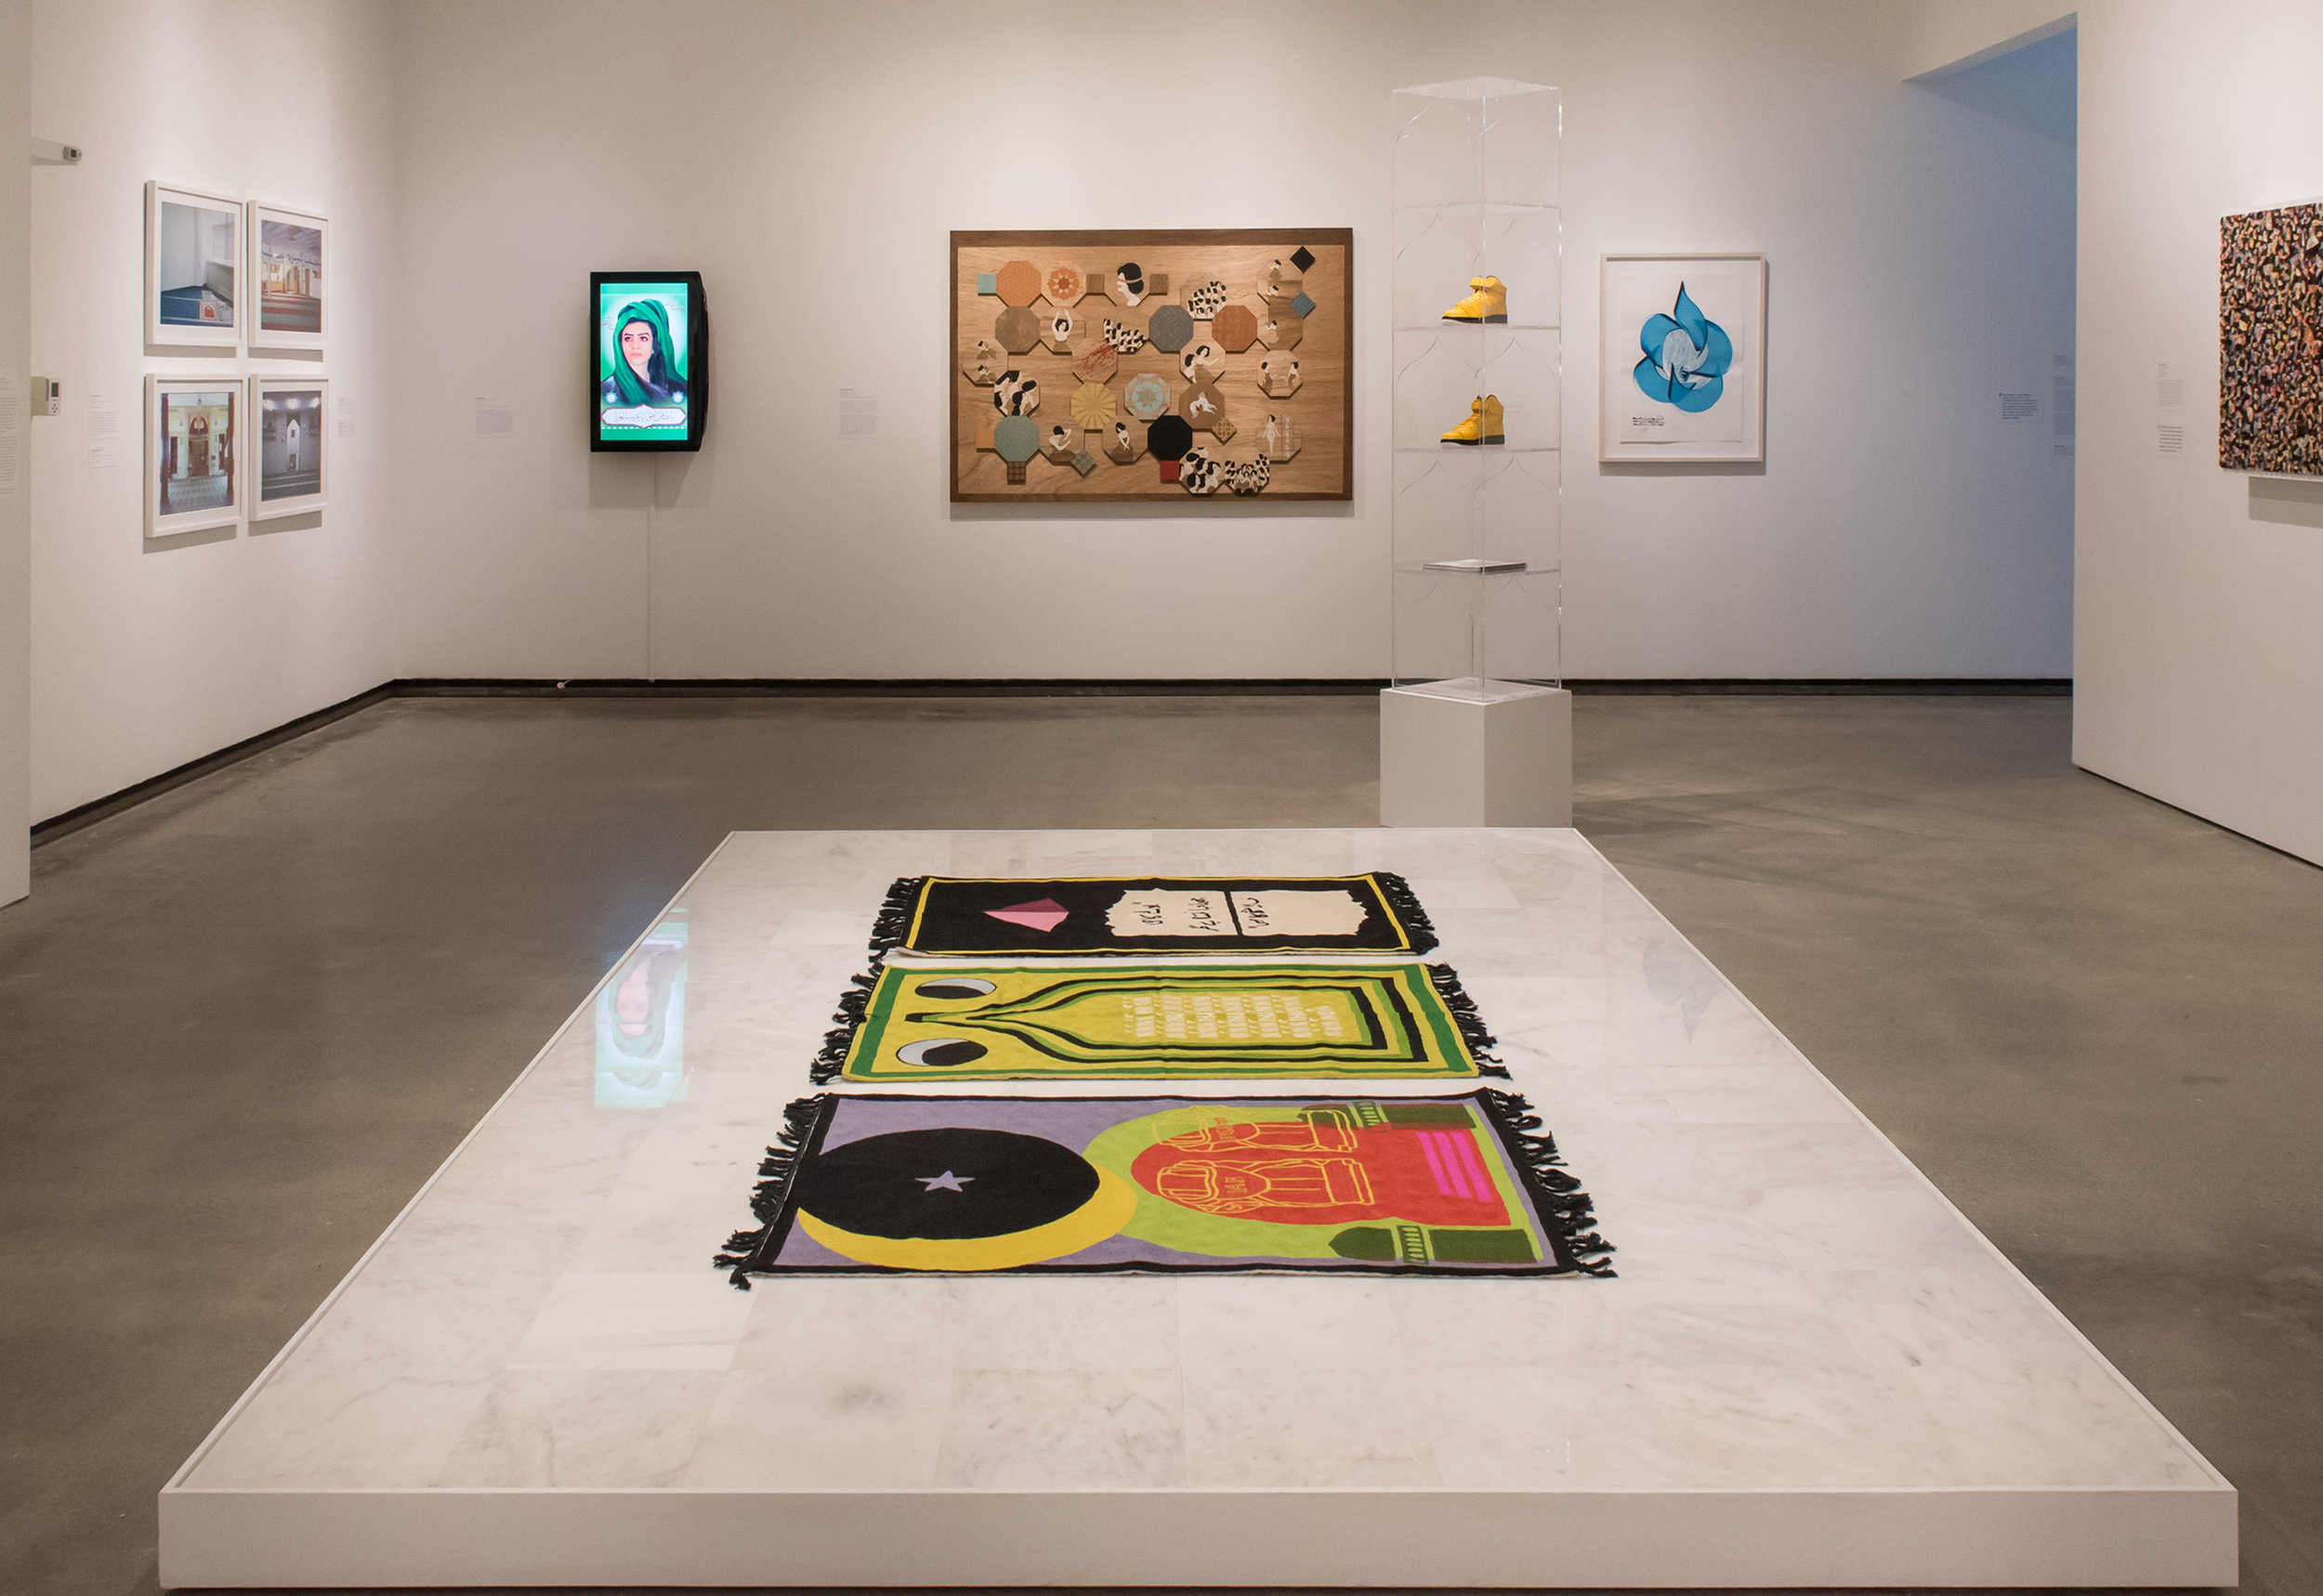 (From left to right)  Purple Heart, Lunar Count Down, Act Up, at  Katonah Museum of Art, NY,Handmade wool rugs custom designed by artist, made in Kashmir, India, 48 × 30 in, installed on marble platform, 2018